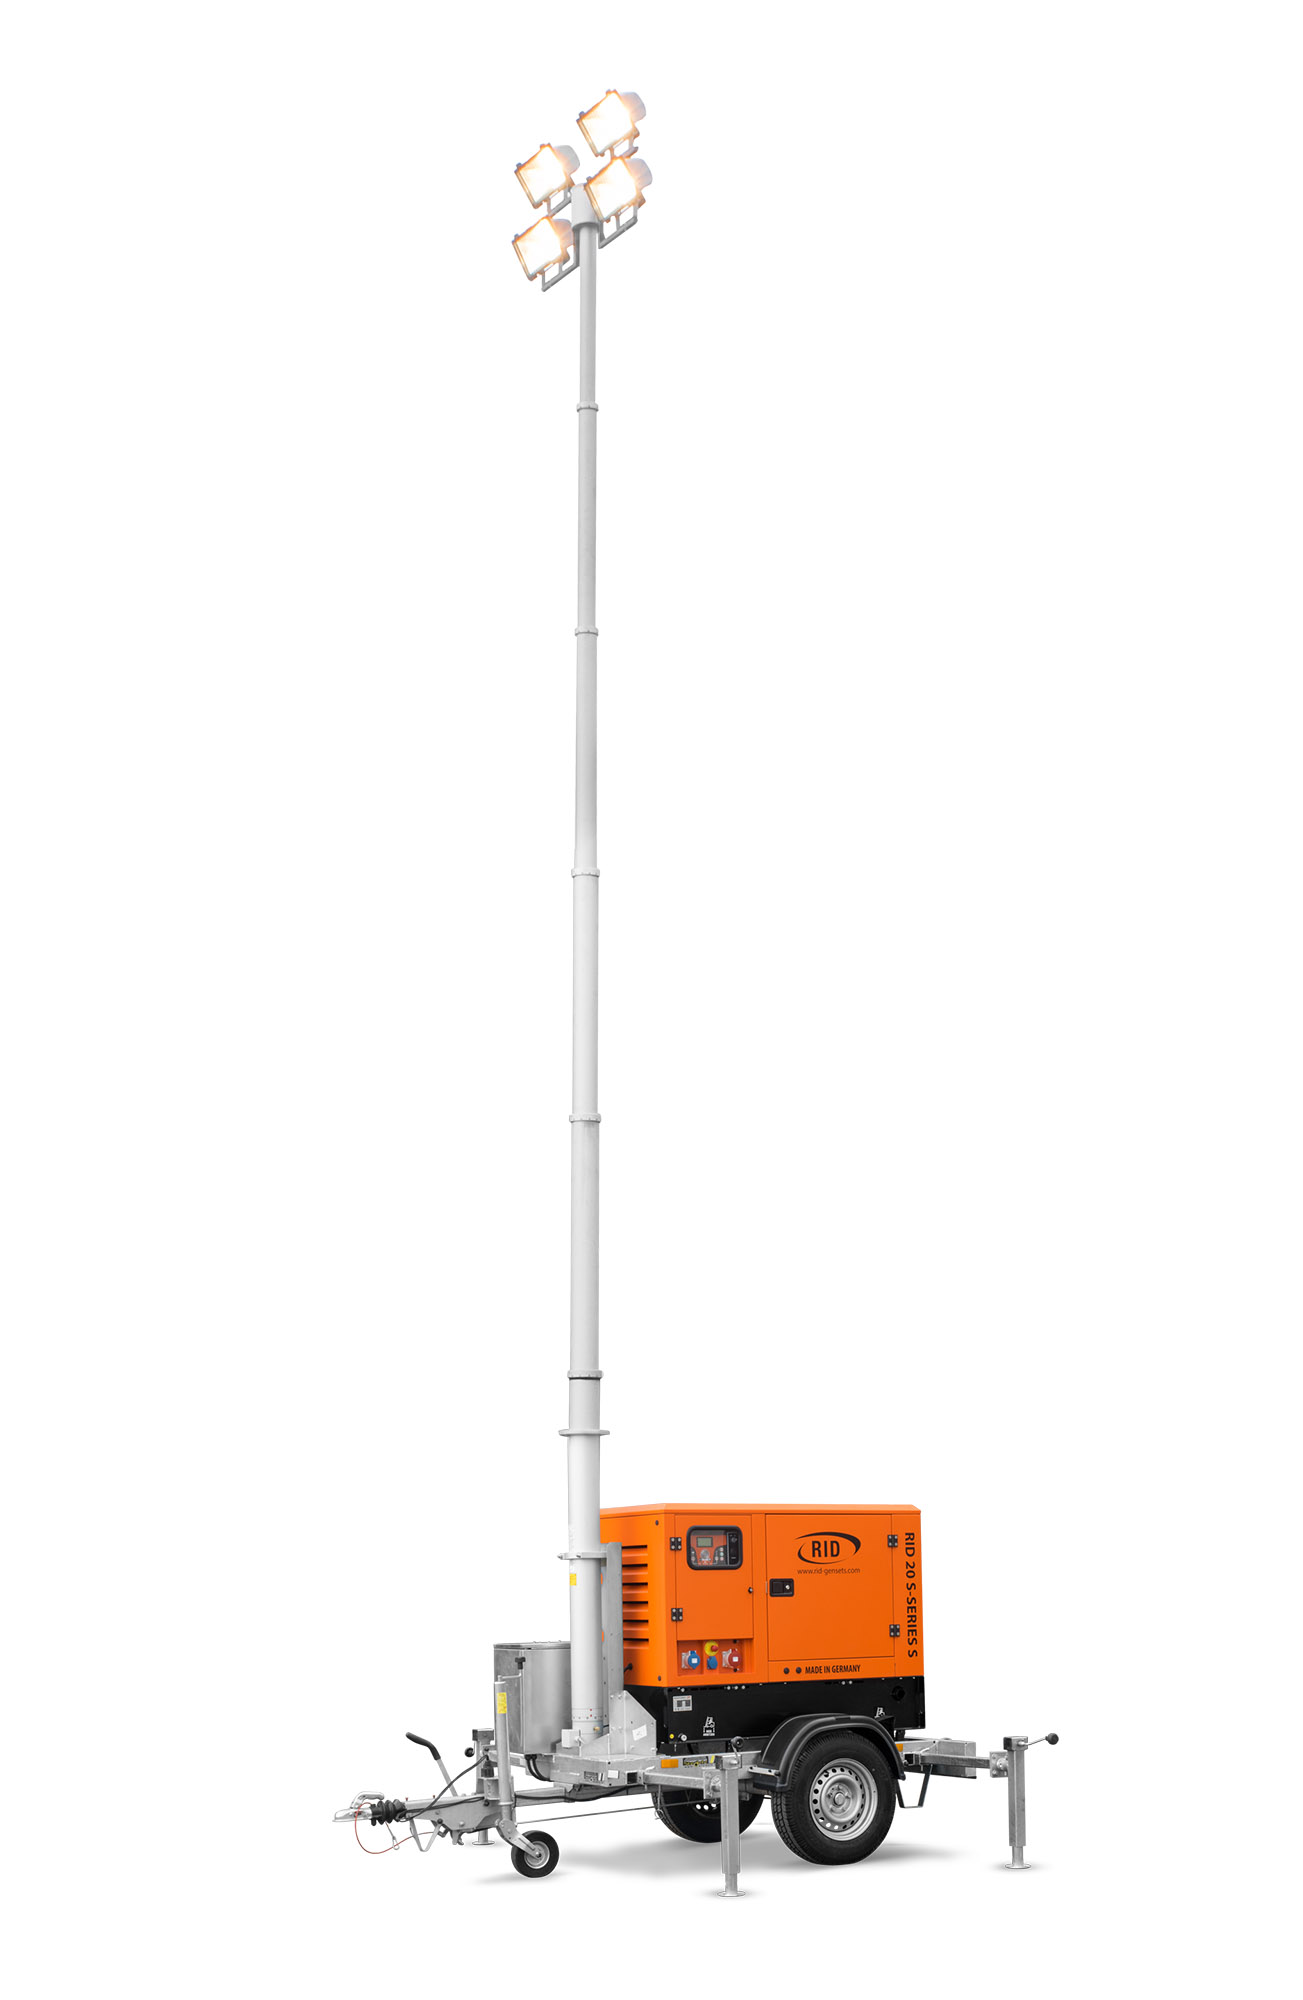 RID 20 S-SERIES S LICHTMAST iso 2